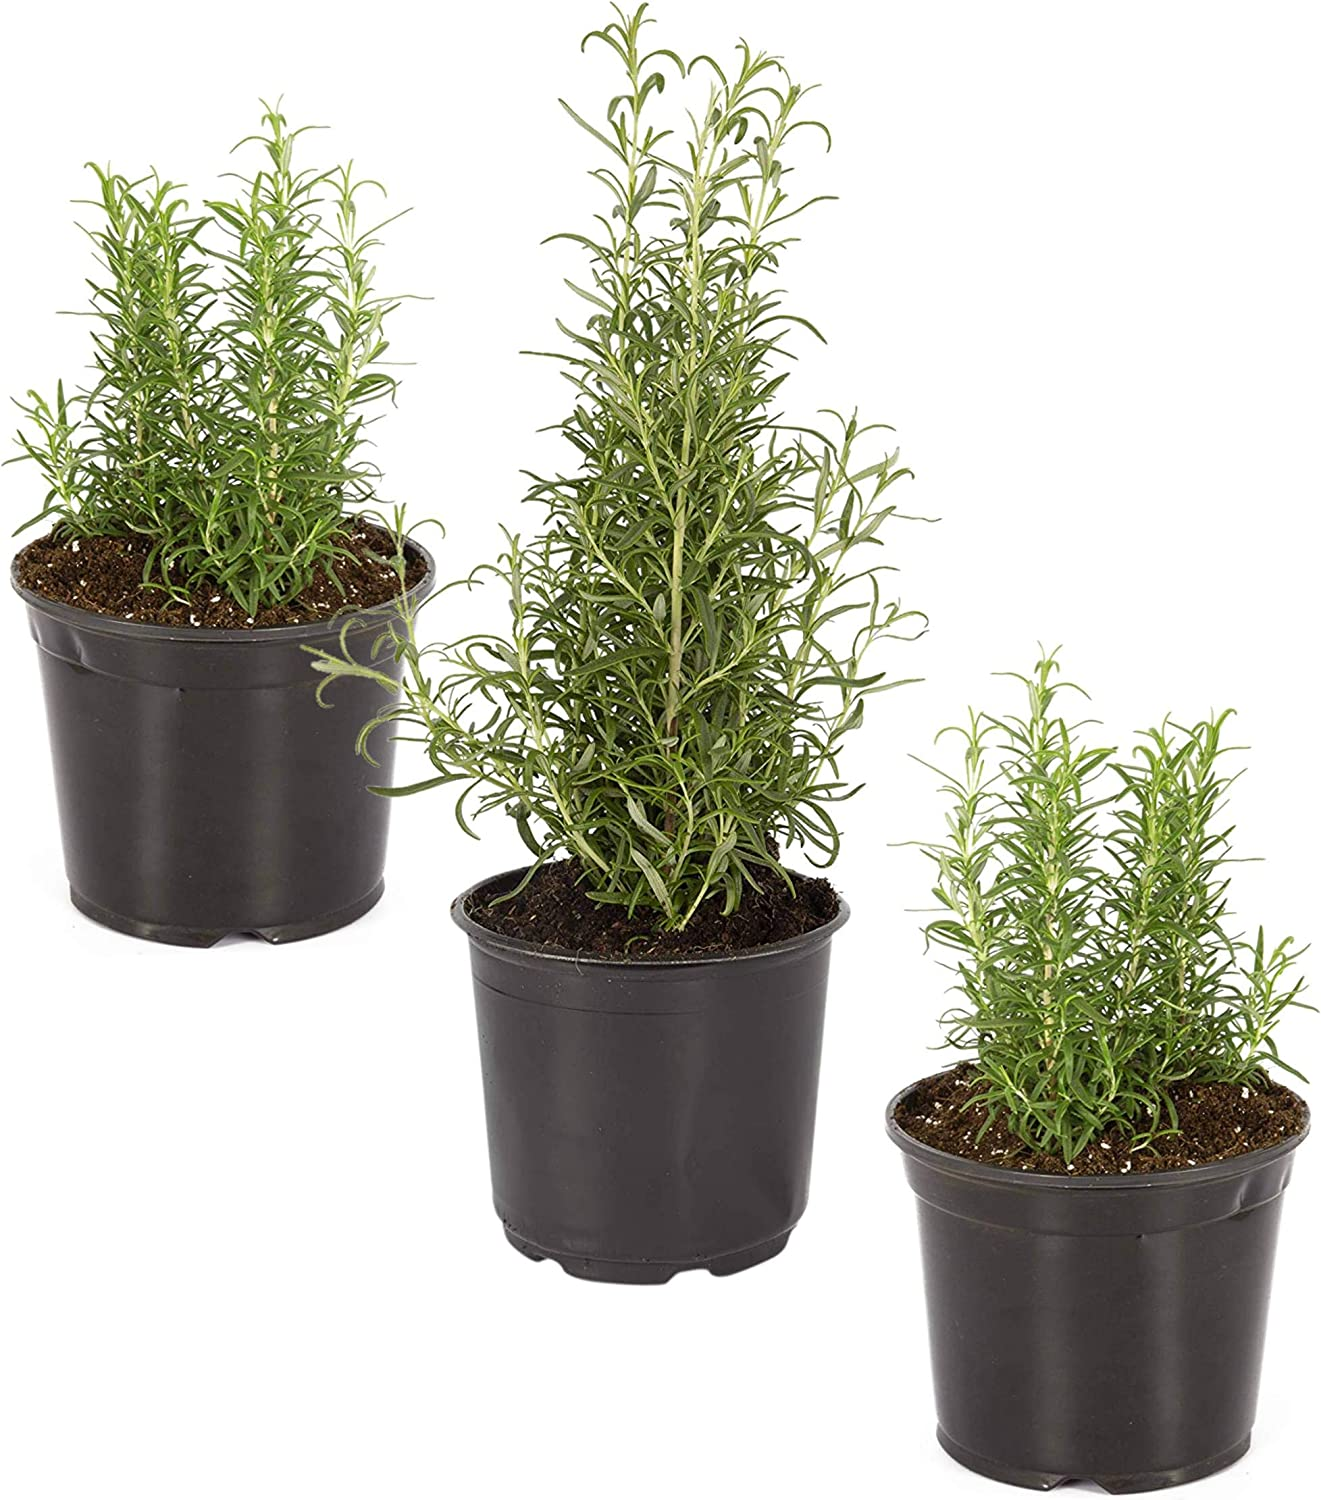 """The Three Company Live Rosemary Herb (3 Per Pack) Aromatic and Edible Plant, Naturally Boosts Immune System, 4.5"""" Pot"""